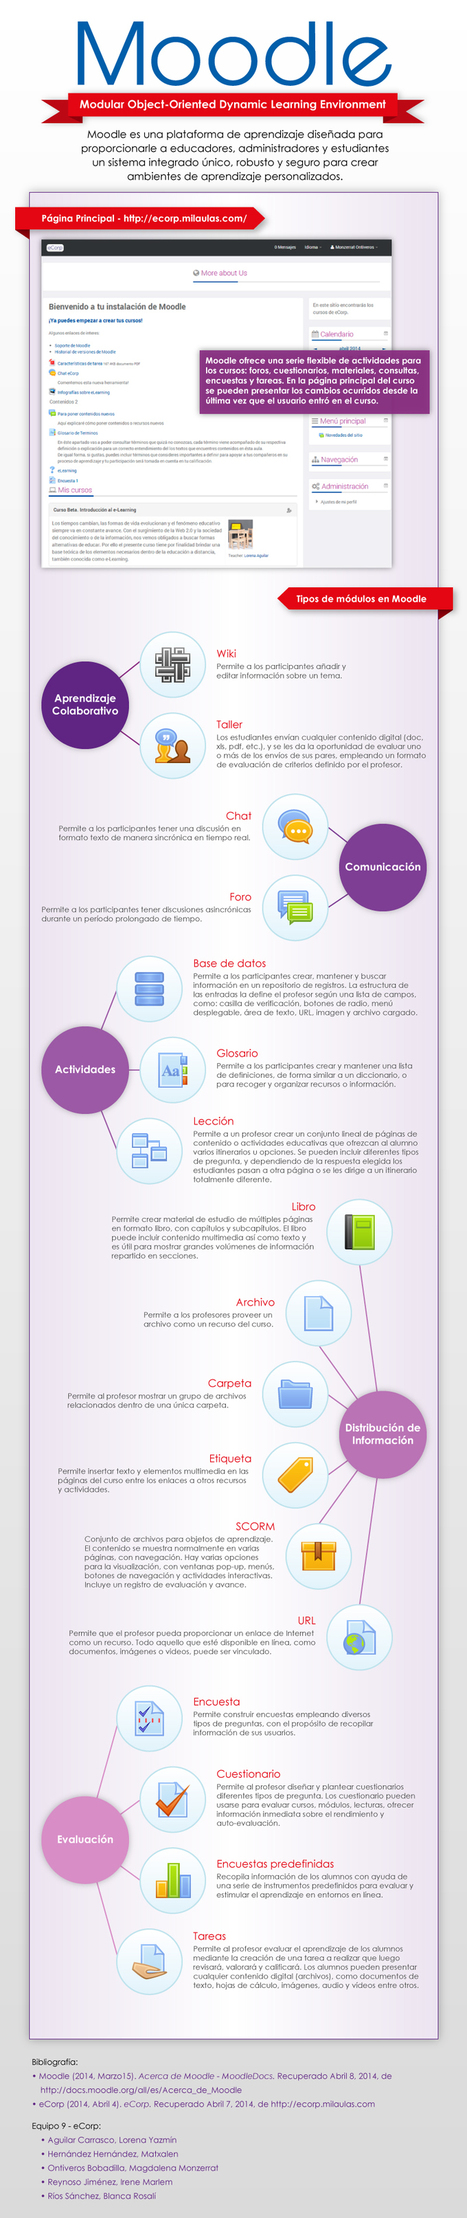 Moodle: qué es y elementos que lo integran #infografia #infographic #education | Aprendizajes 2.0 | Scoop.it